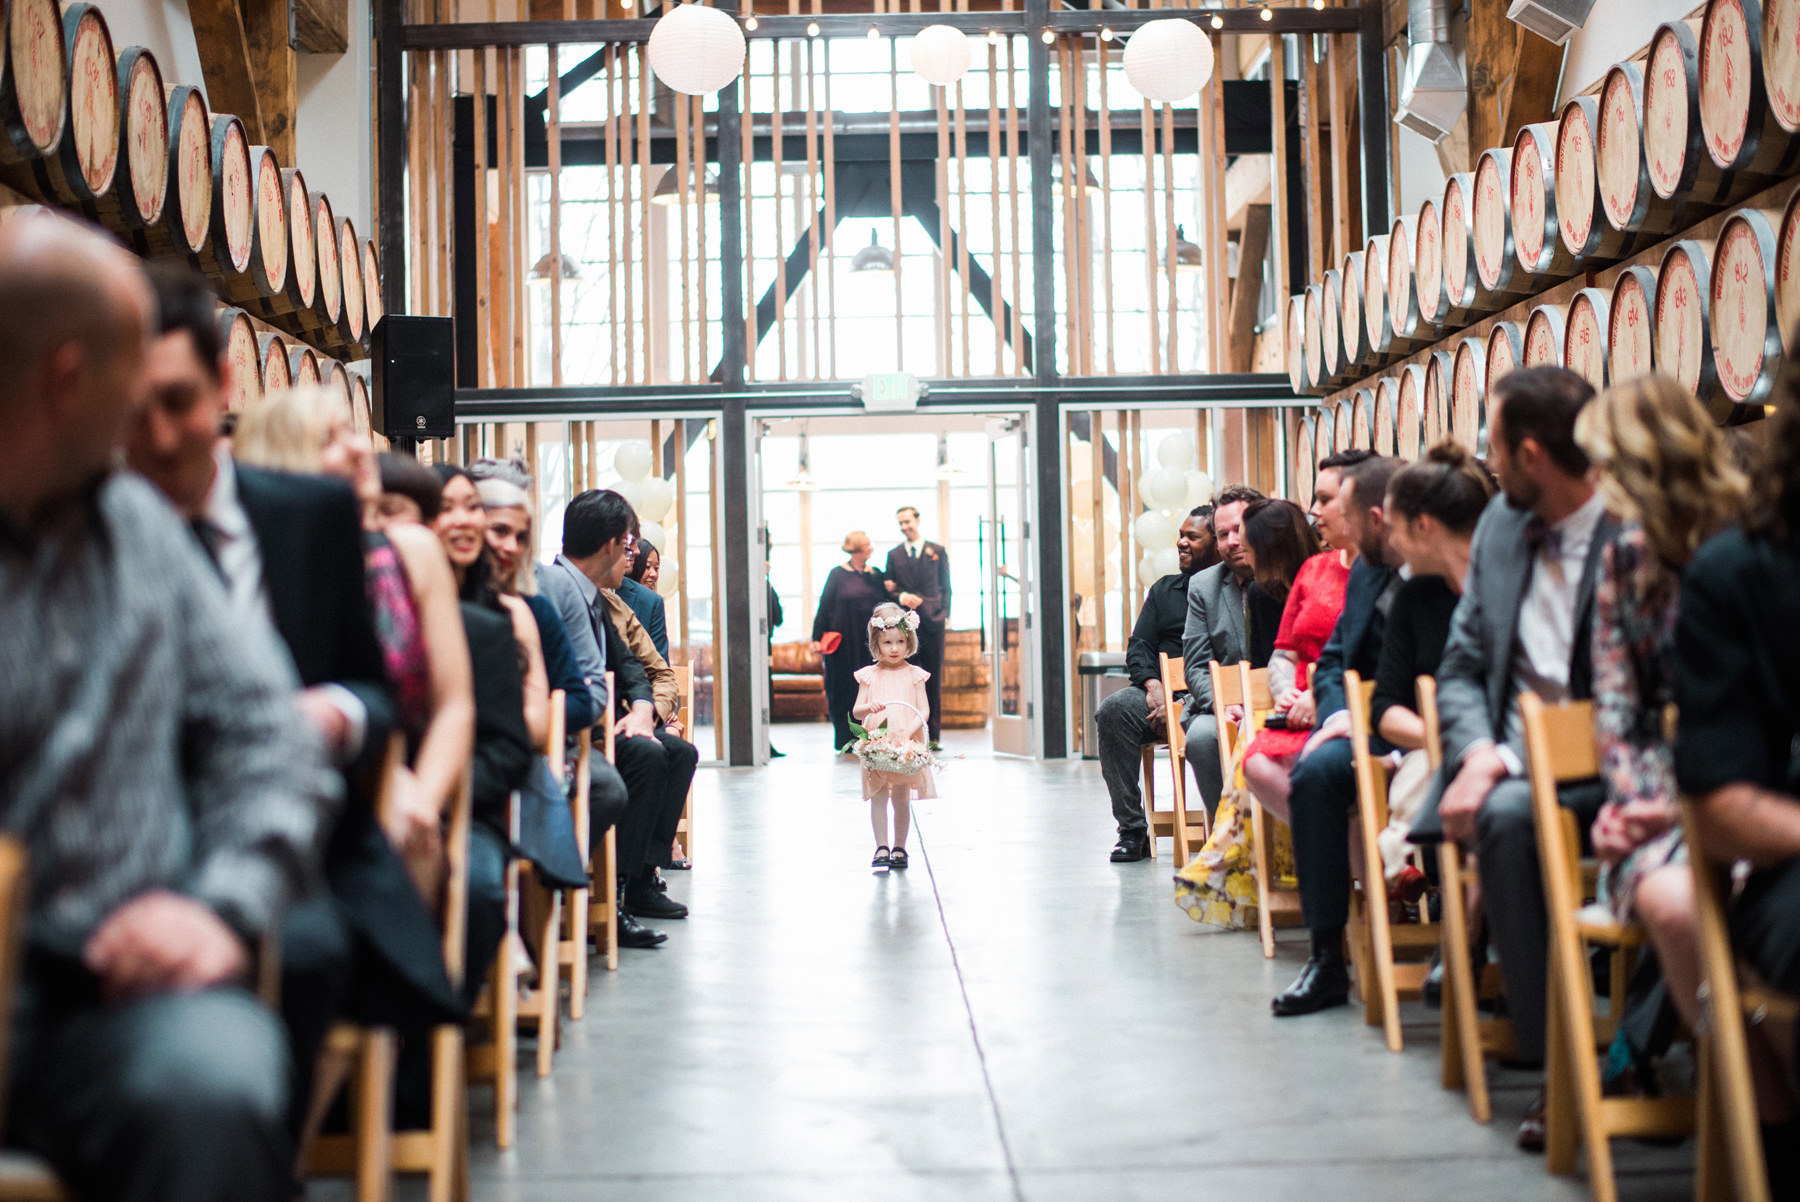 033-wedding-ceremony-among-whiskey-barrels-at-westland-distillery.jpg